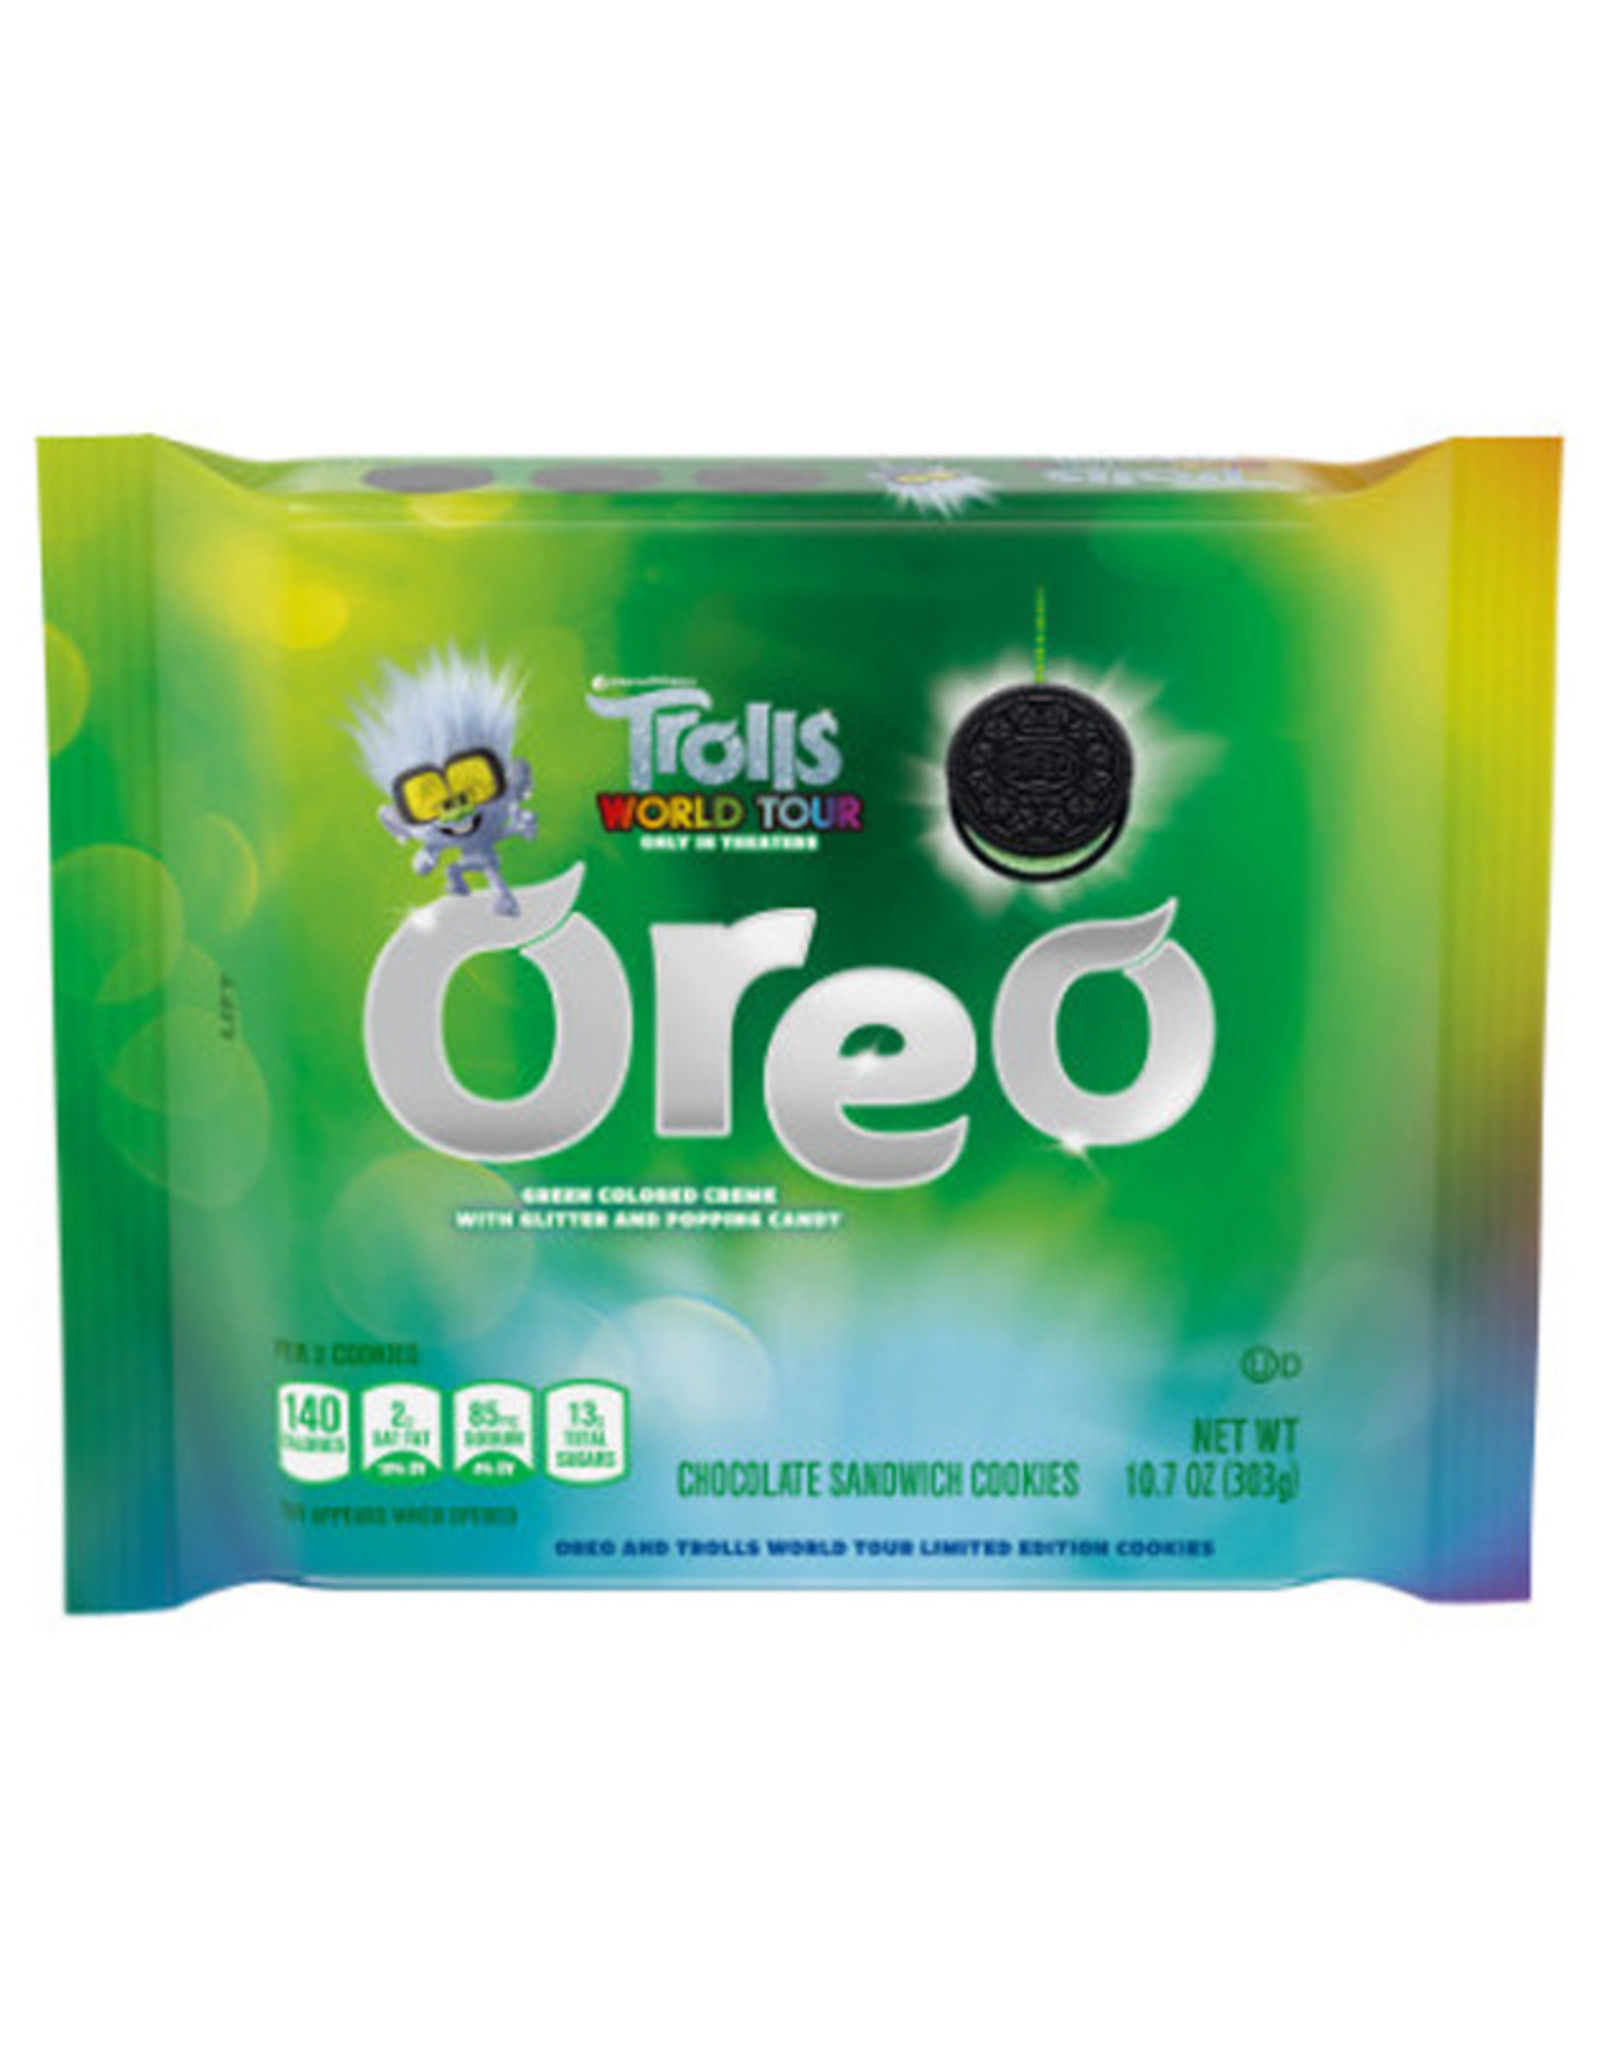 Oreo - Trolls World Tour Limited Edition - Green Colored Cream With Popping Candy - 303g